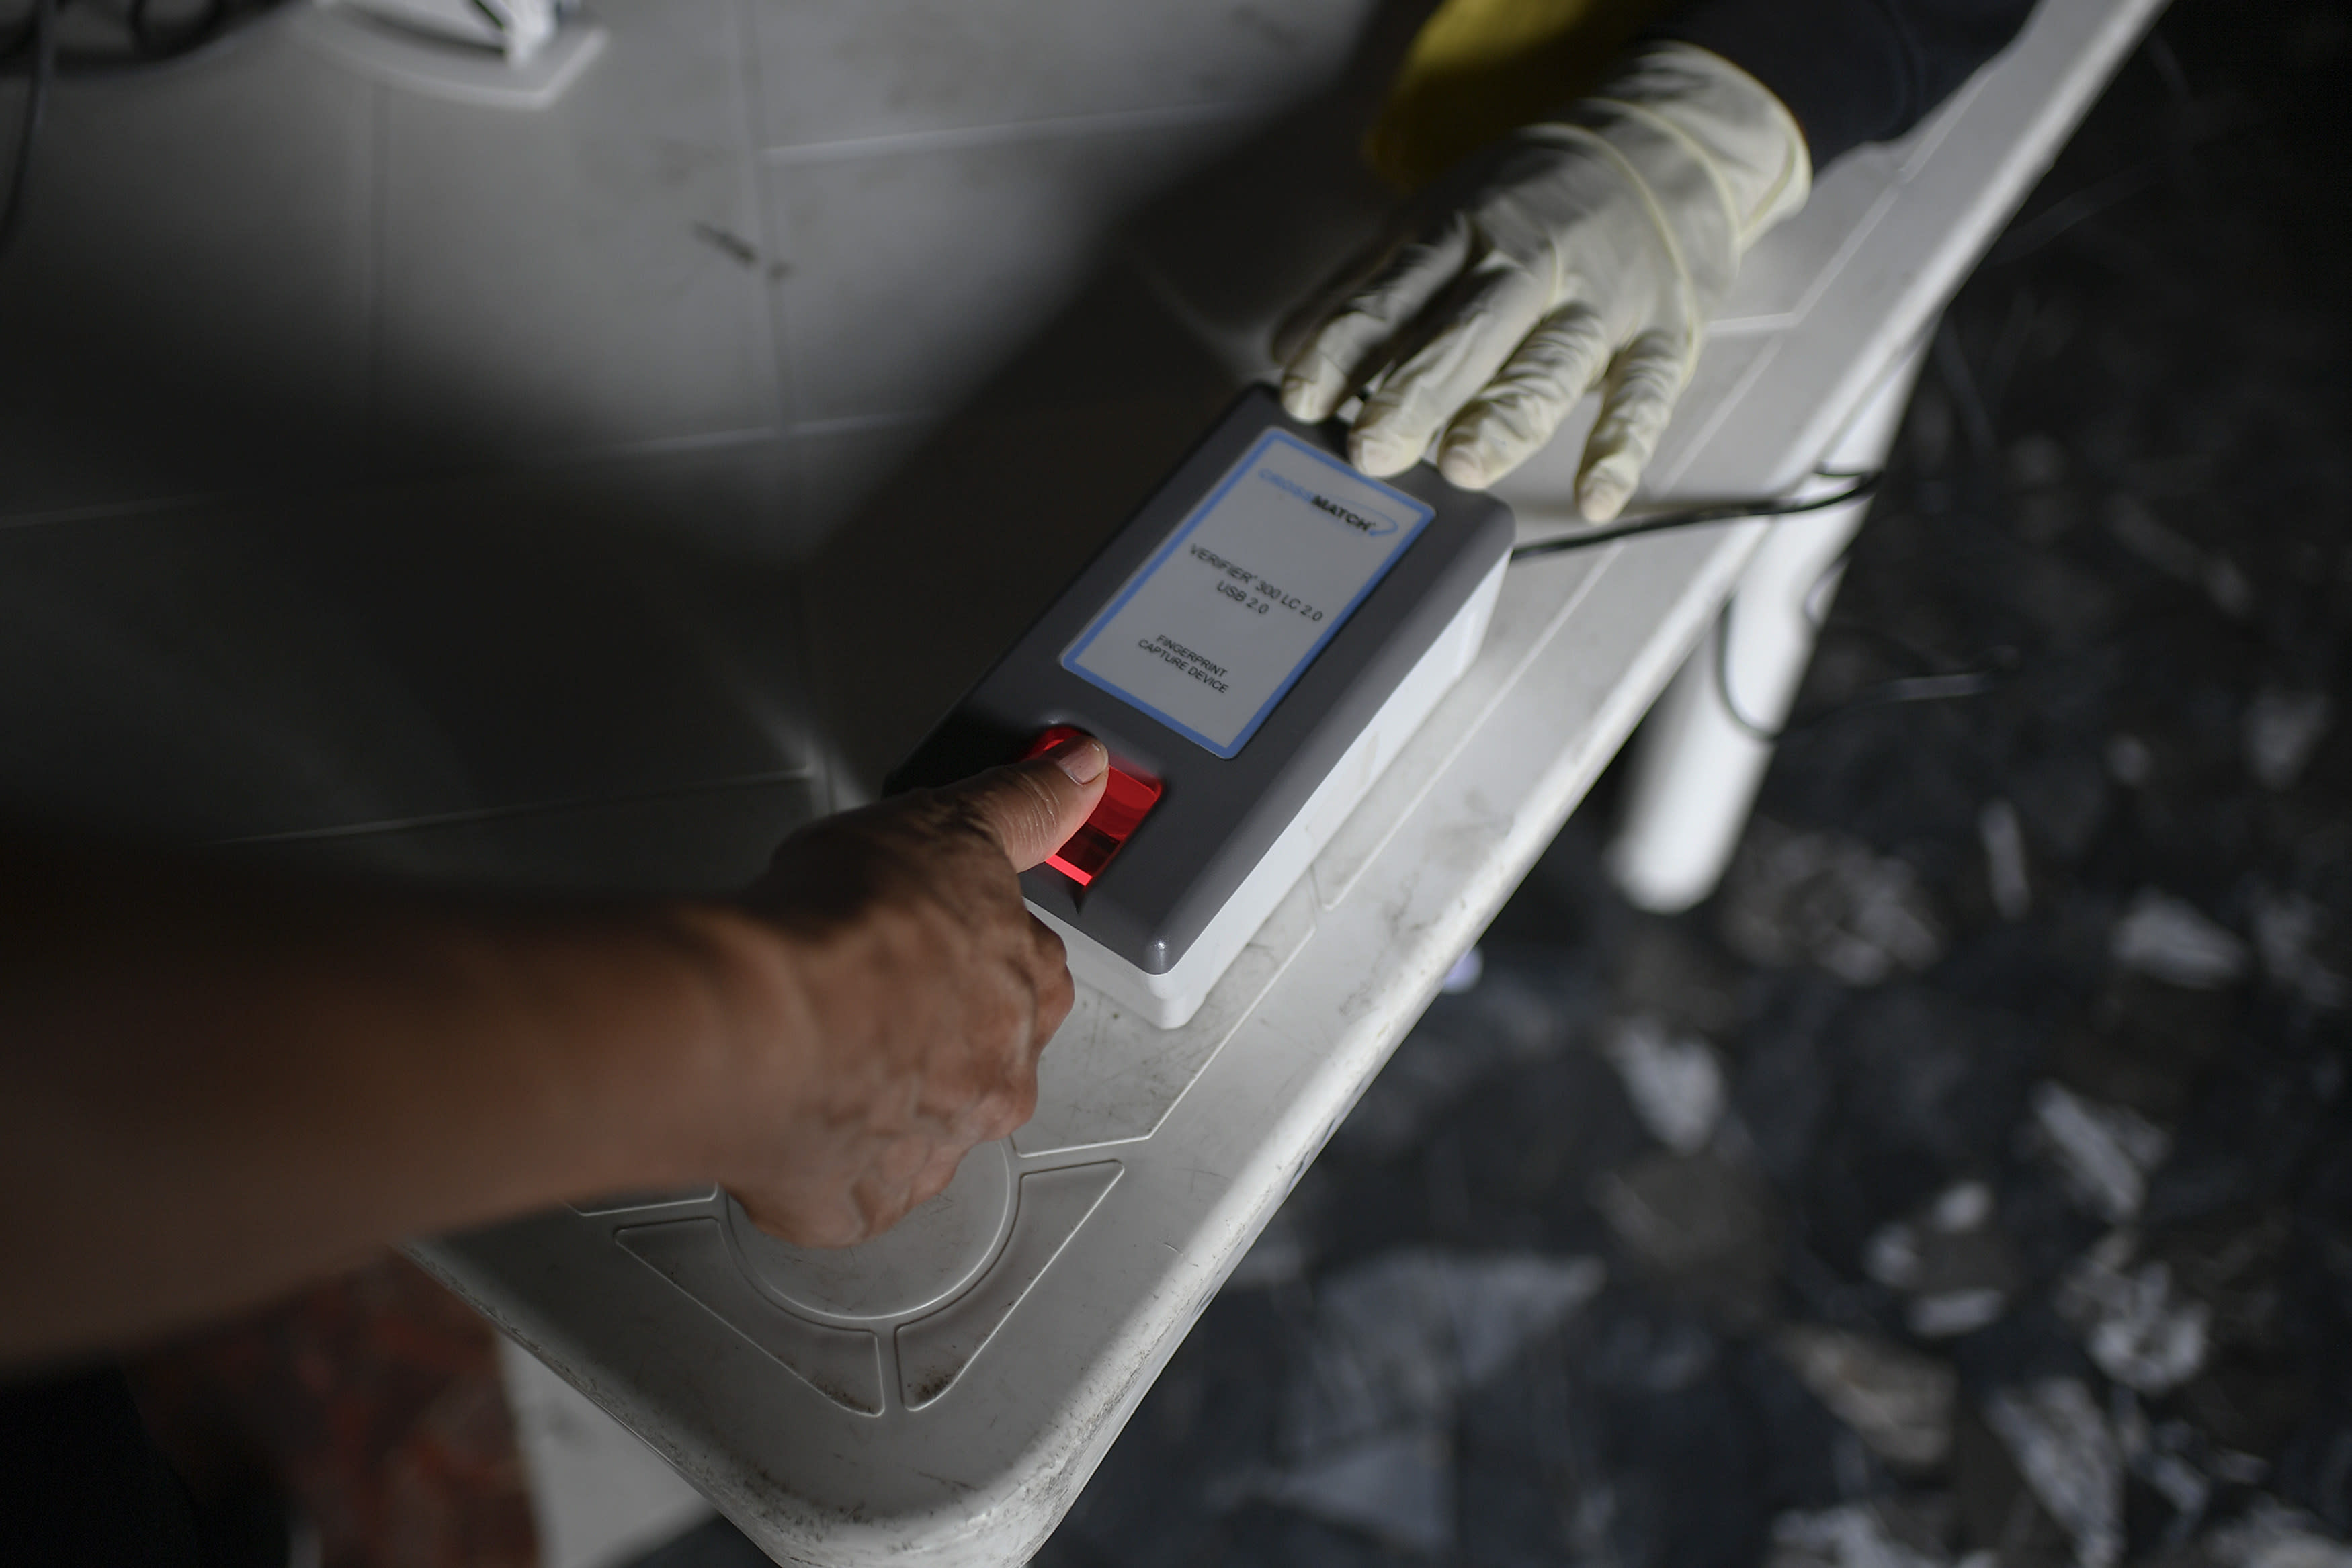 A woman places her thumb on a handheld fingerprint scanner at a validation center to certify the authenticity of voter data in Caracas, Venezuela, Saturday, July 25, 2020, amid the new coronavirus pandemic. The legislative election is scheduled for Dec. 6 and thus far the opposition has indicated it will not participate. (AP Photo/Matias Delacroix)